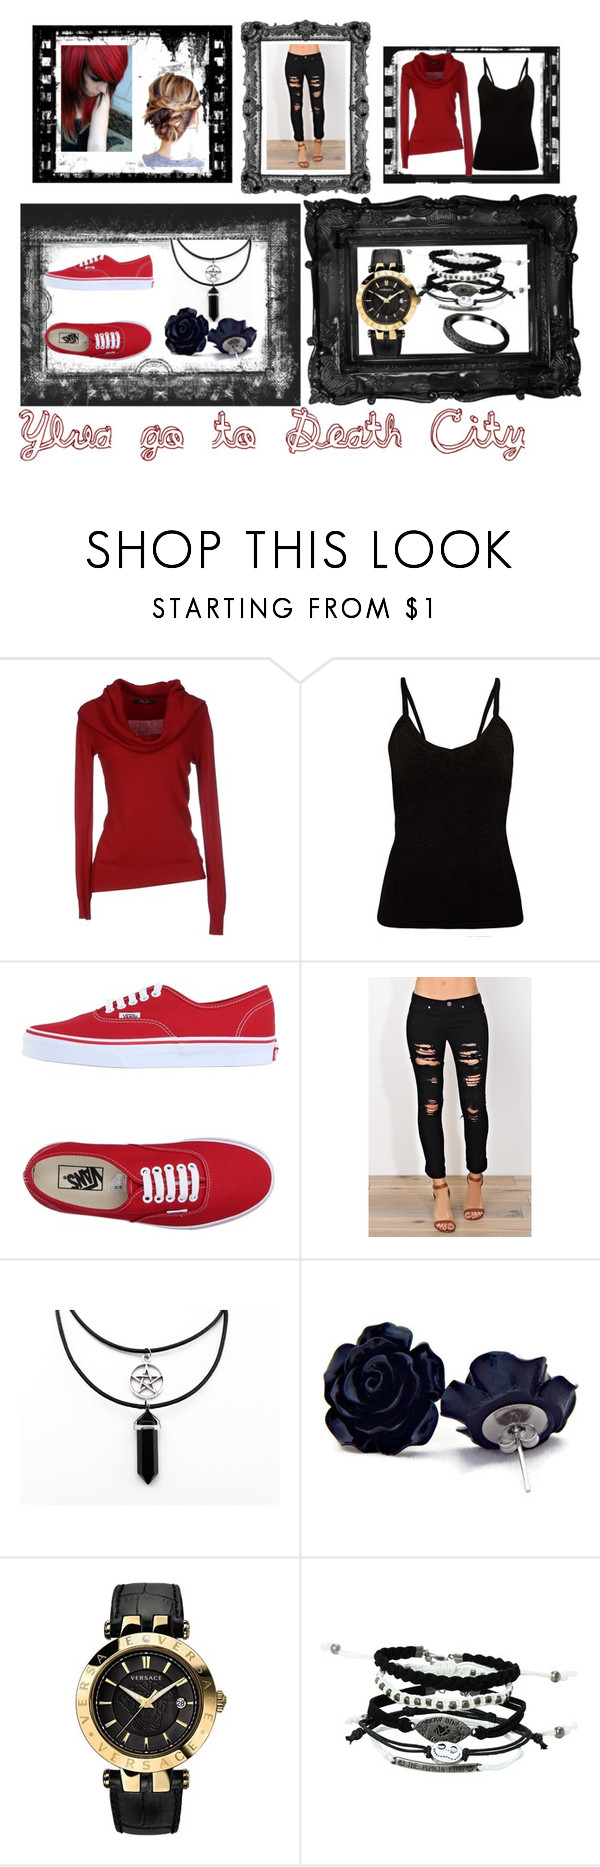 """Ylva looks"" by carmen-41-navarro ❤ liked on Polyvore featuring Vans and Versace"